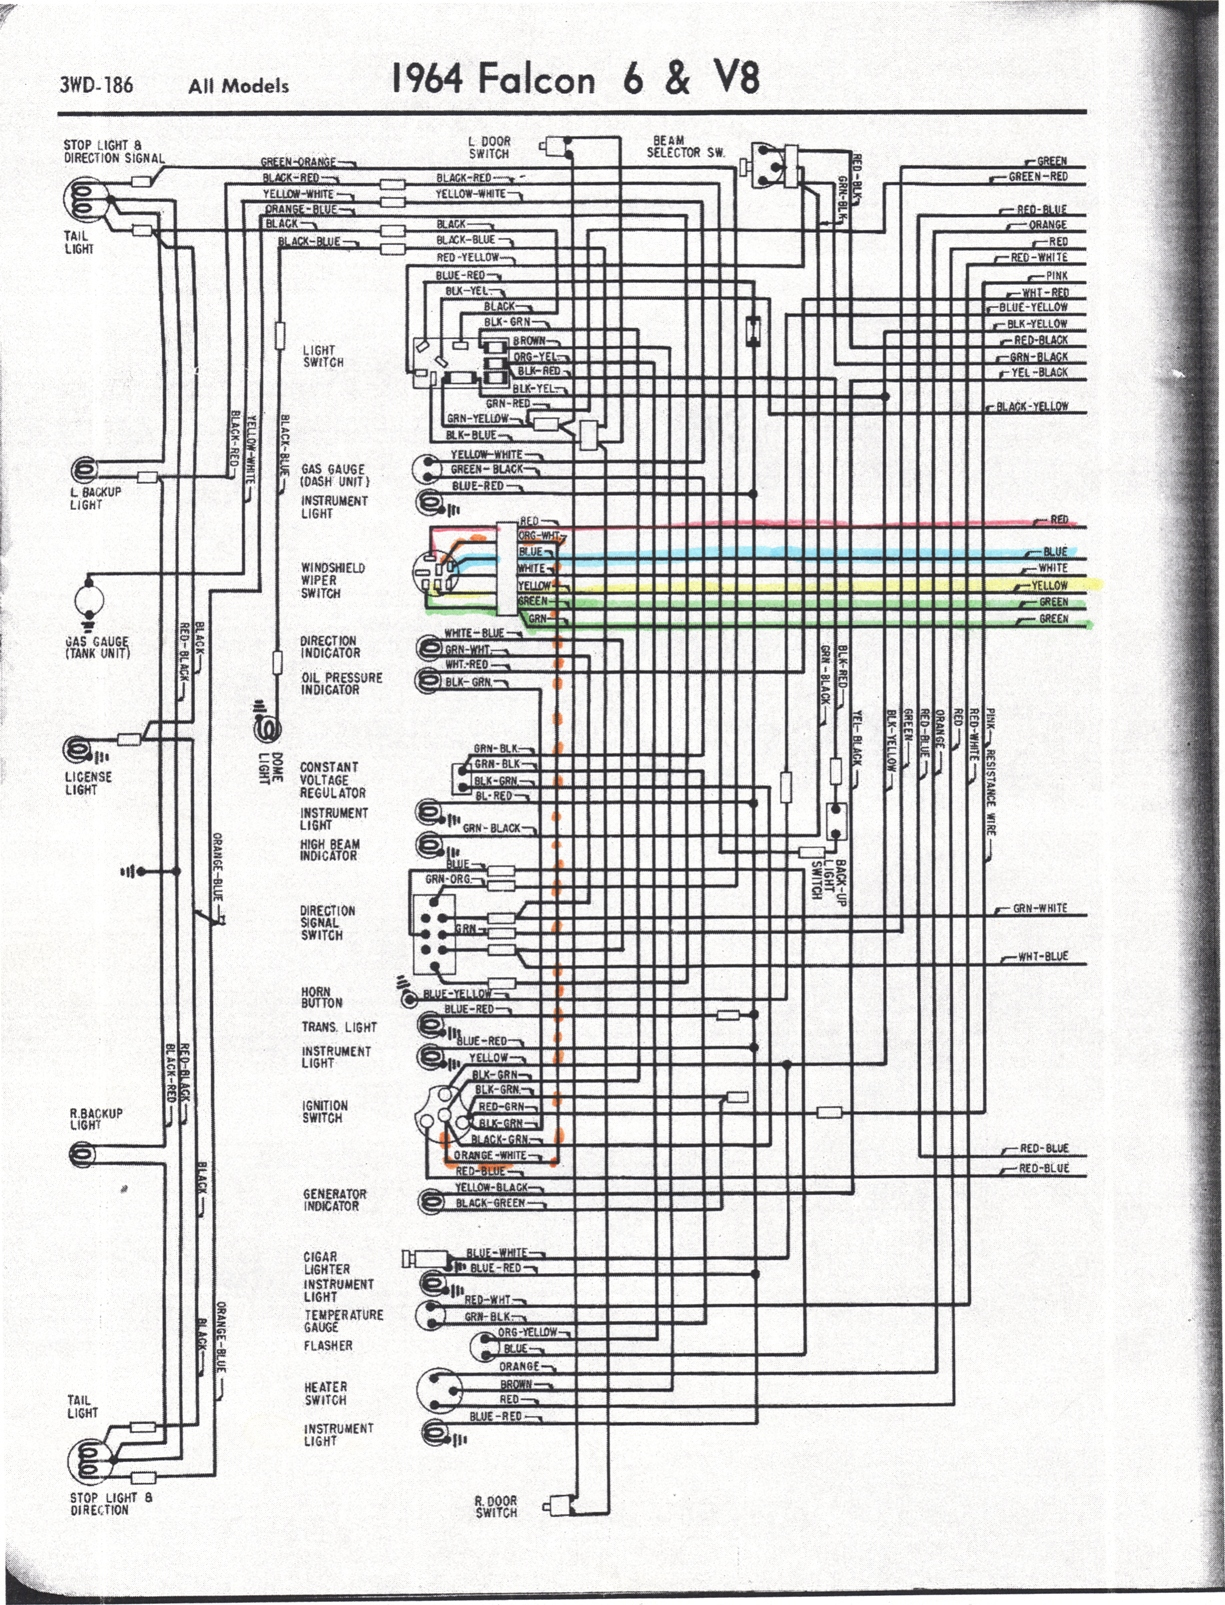 64_Falcon 1 falcon diagrams 1964 ford falcon wiring diagram at suagrazia.org